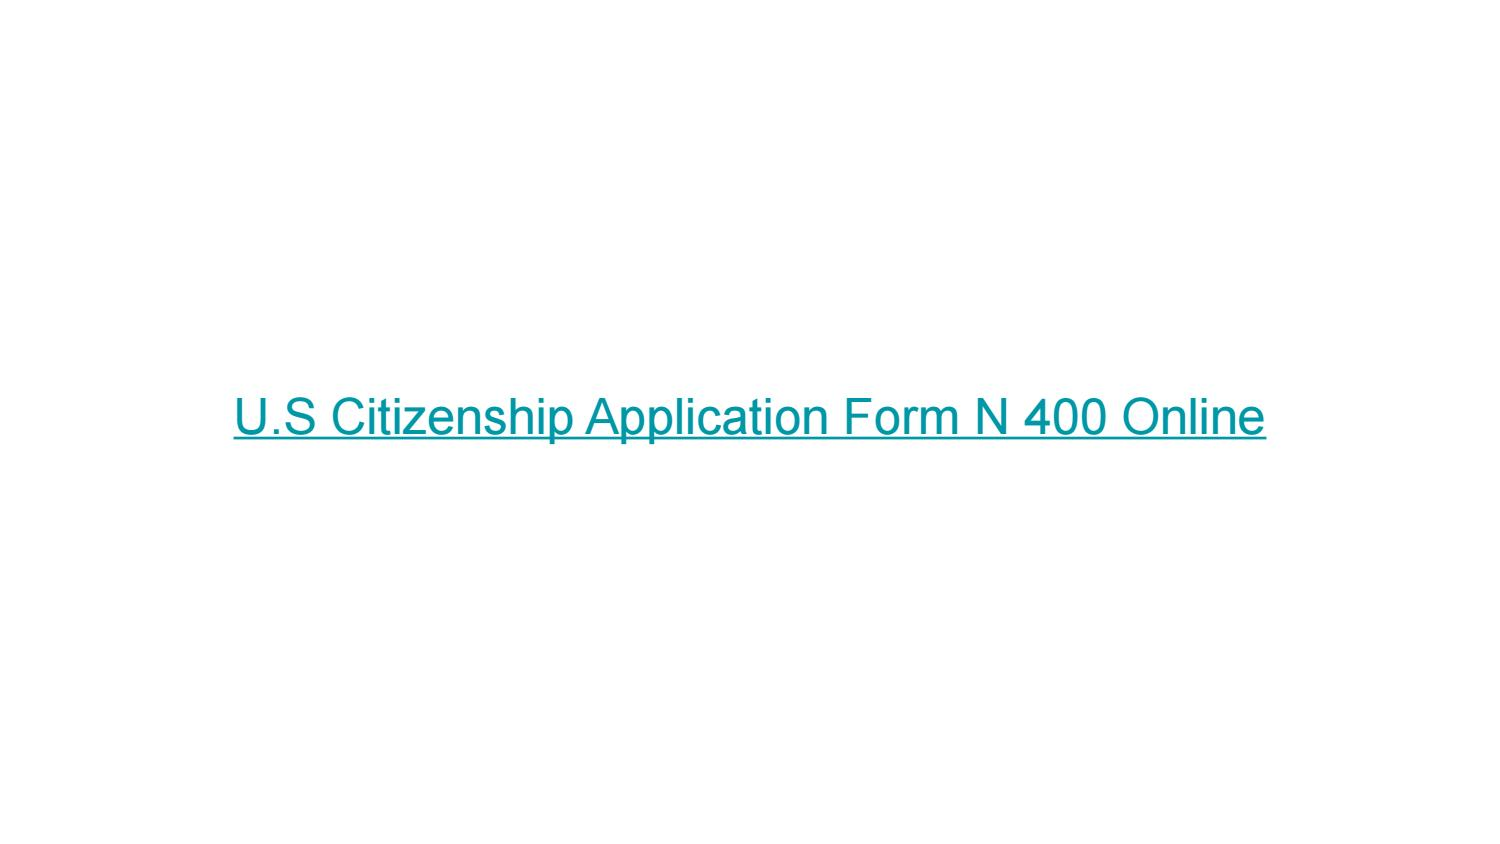 Citizenship Application Form N 400